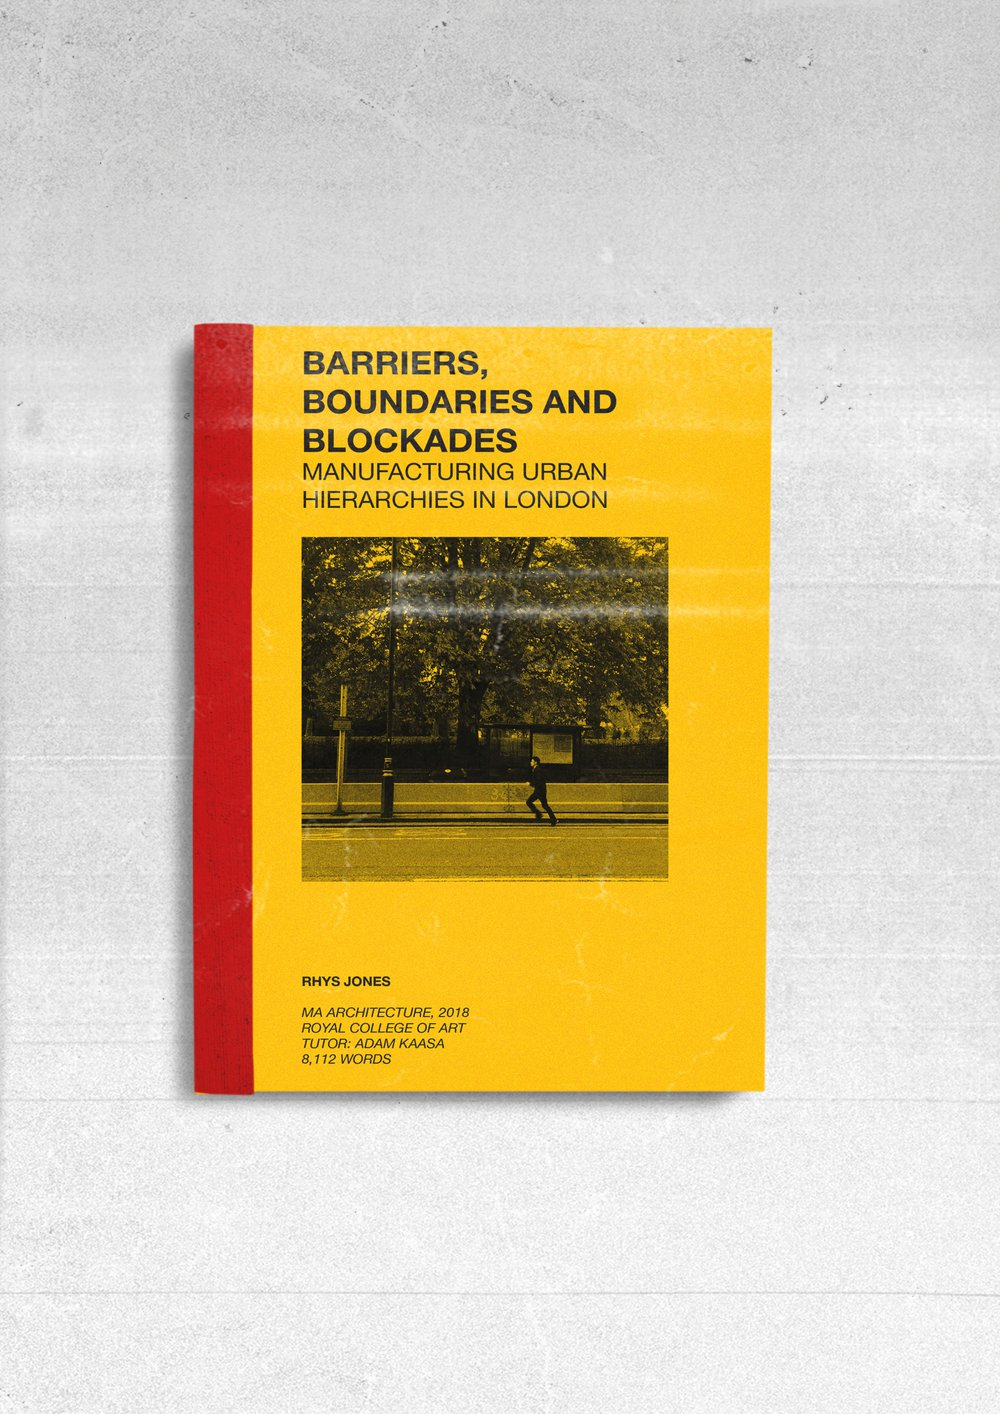 MA Dissertation - Barriers, Boundaries, and Blockades, Manufacturing Urban Hierarchies in London